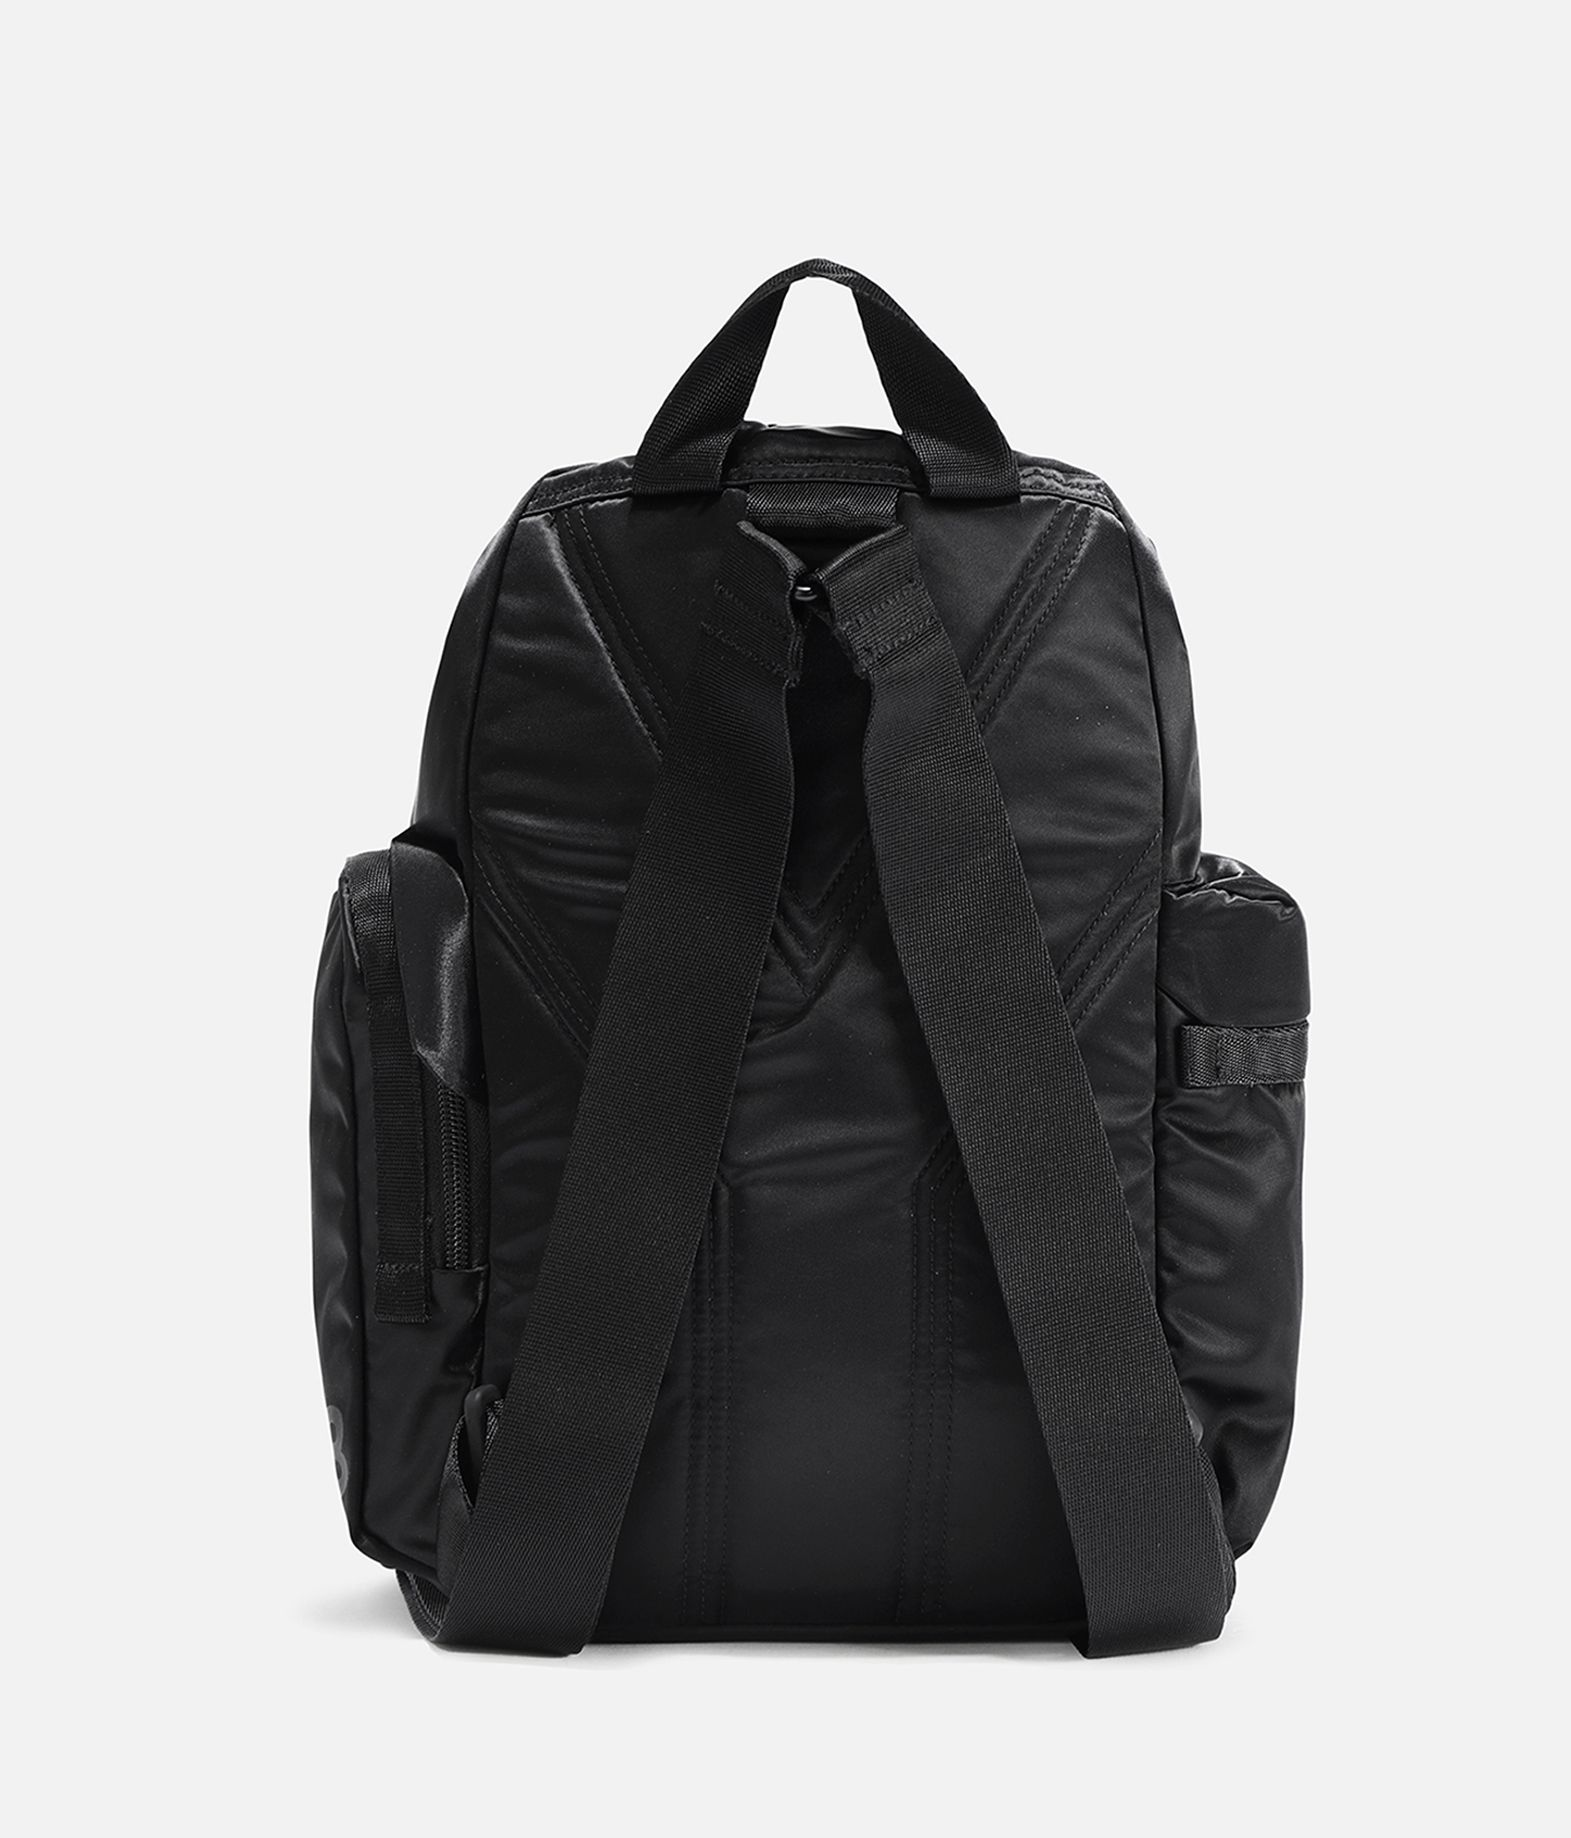 Y-3 Y-3 Mini Backpack Backpack Woman e